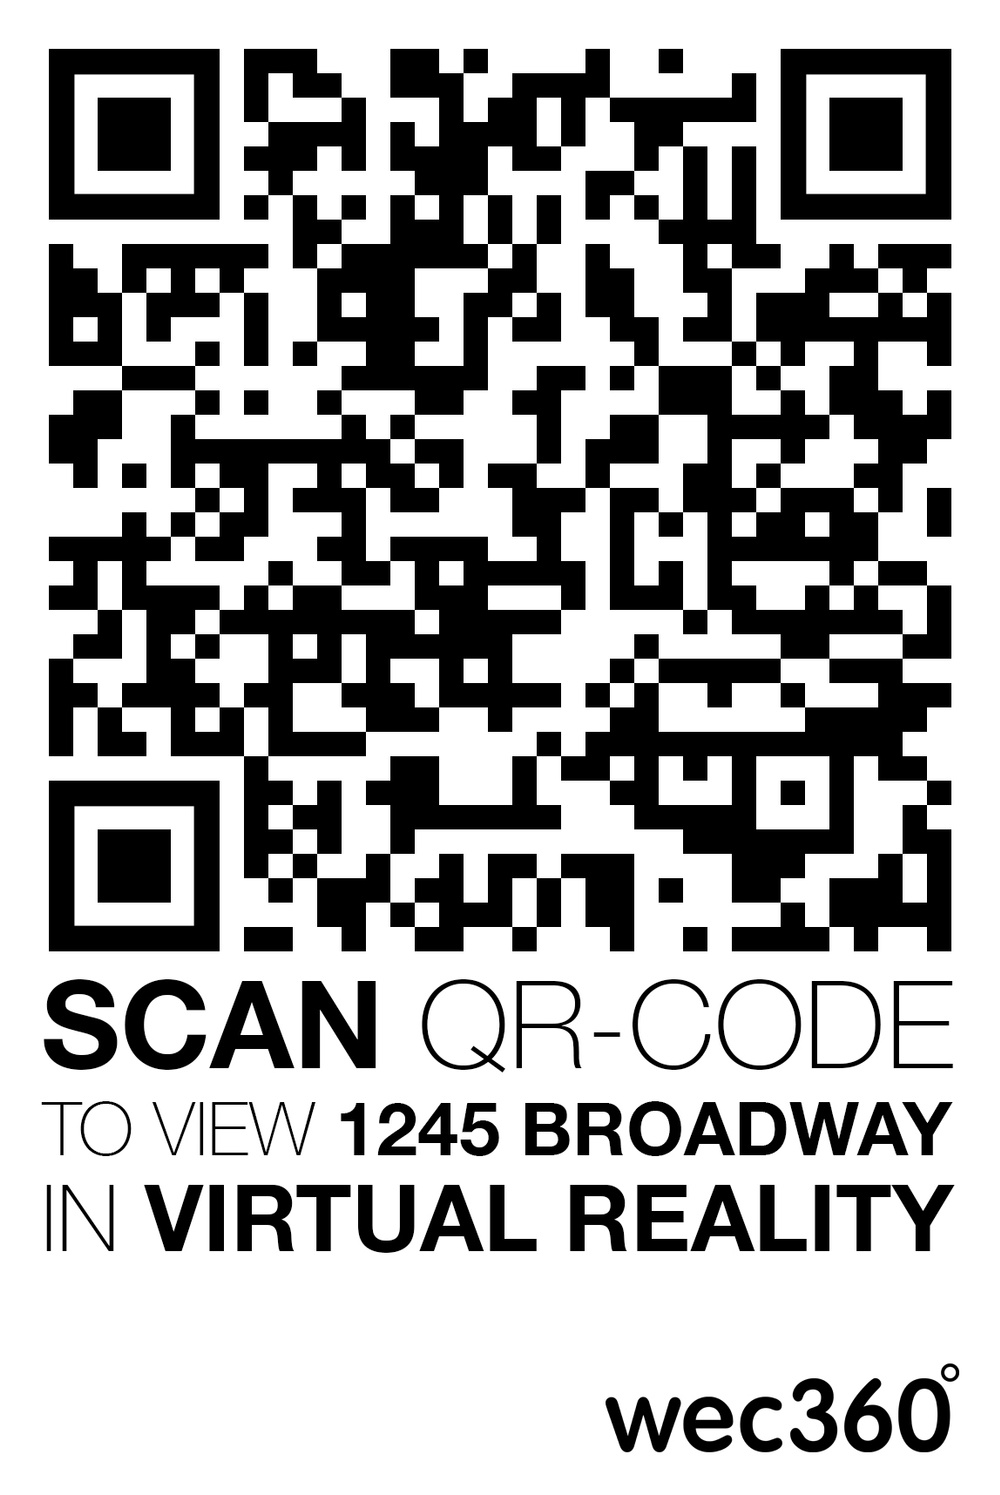 Use your smartphone to scan the QR code to see the the 1245 Broadway project in 360°/VR.